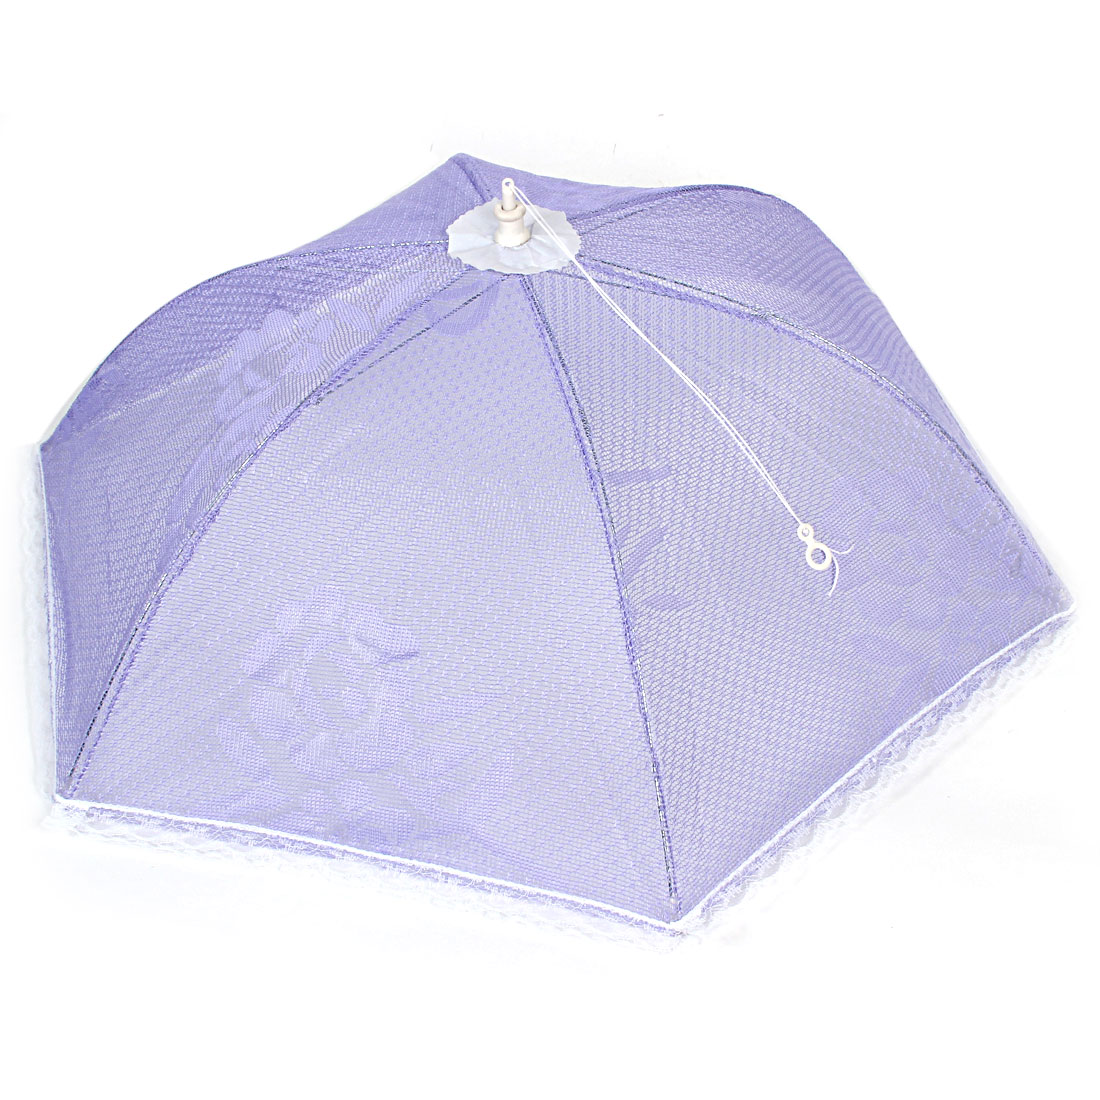 Nylon Netty Umbrella Shaped Flower Printed Foldable Food Cover Purple